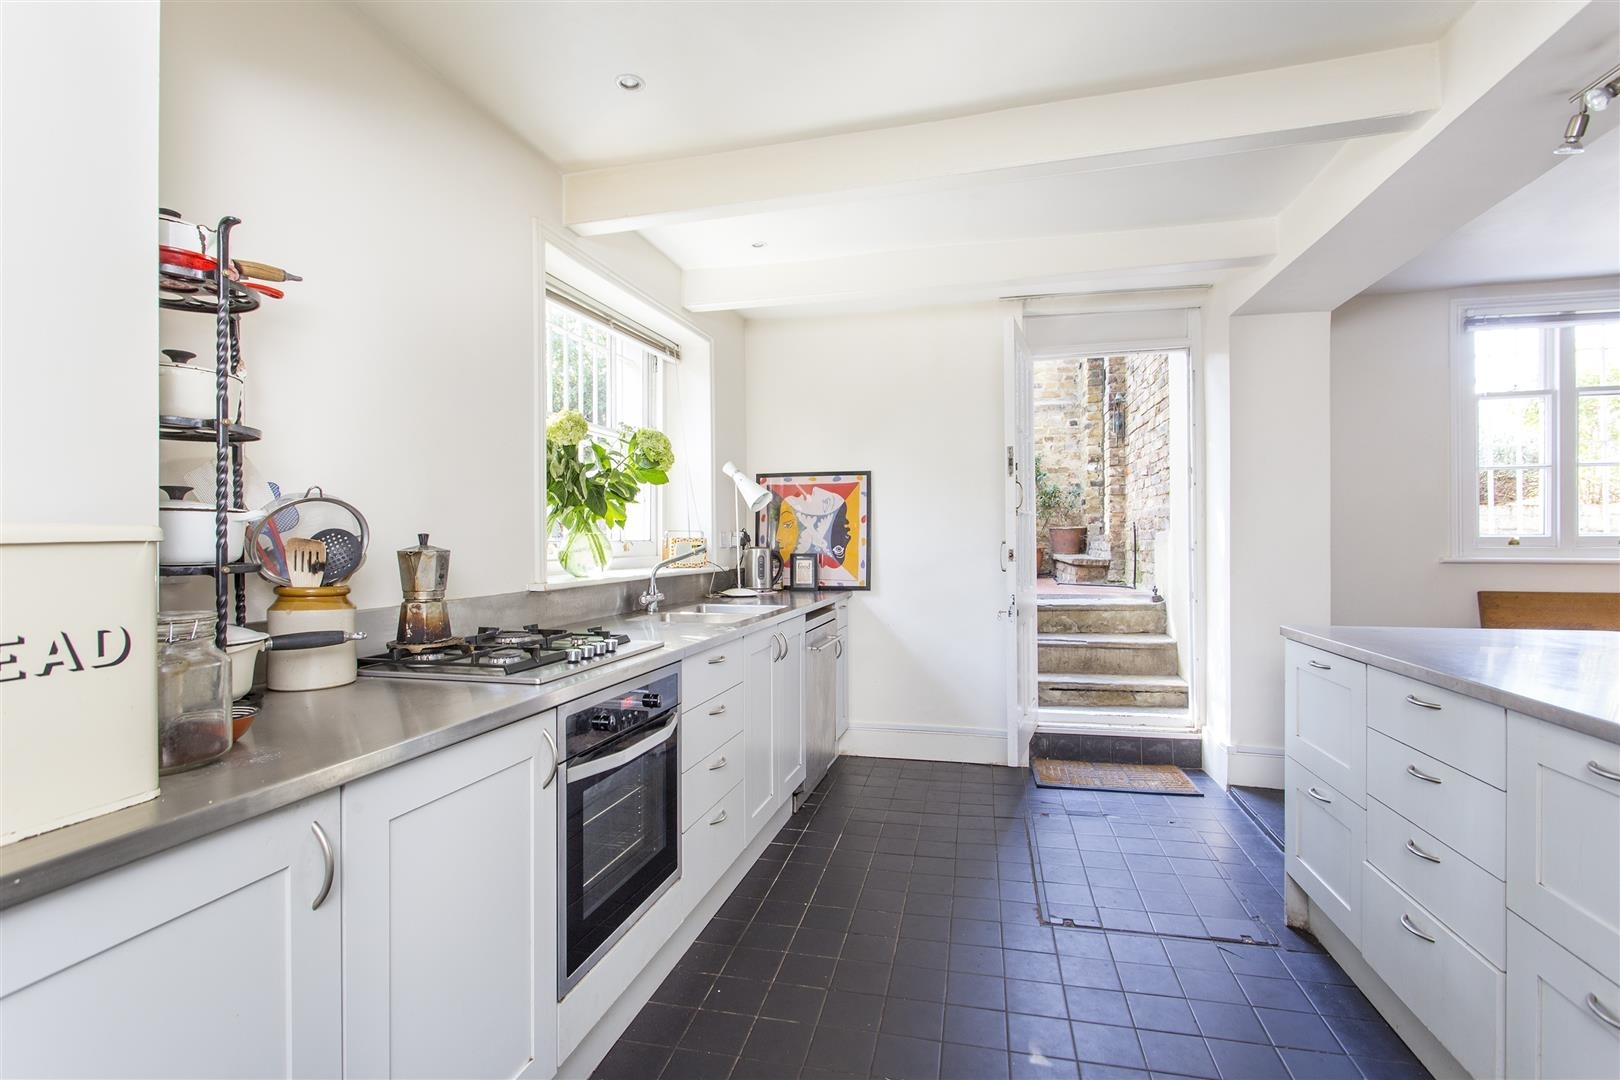 4 Bed House For Sale In Albion Road, London, N16   Location Location ...